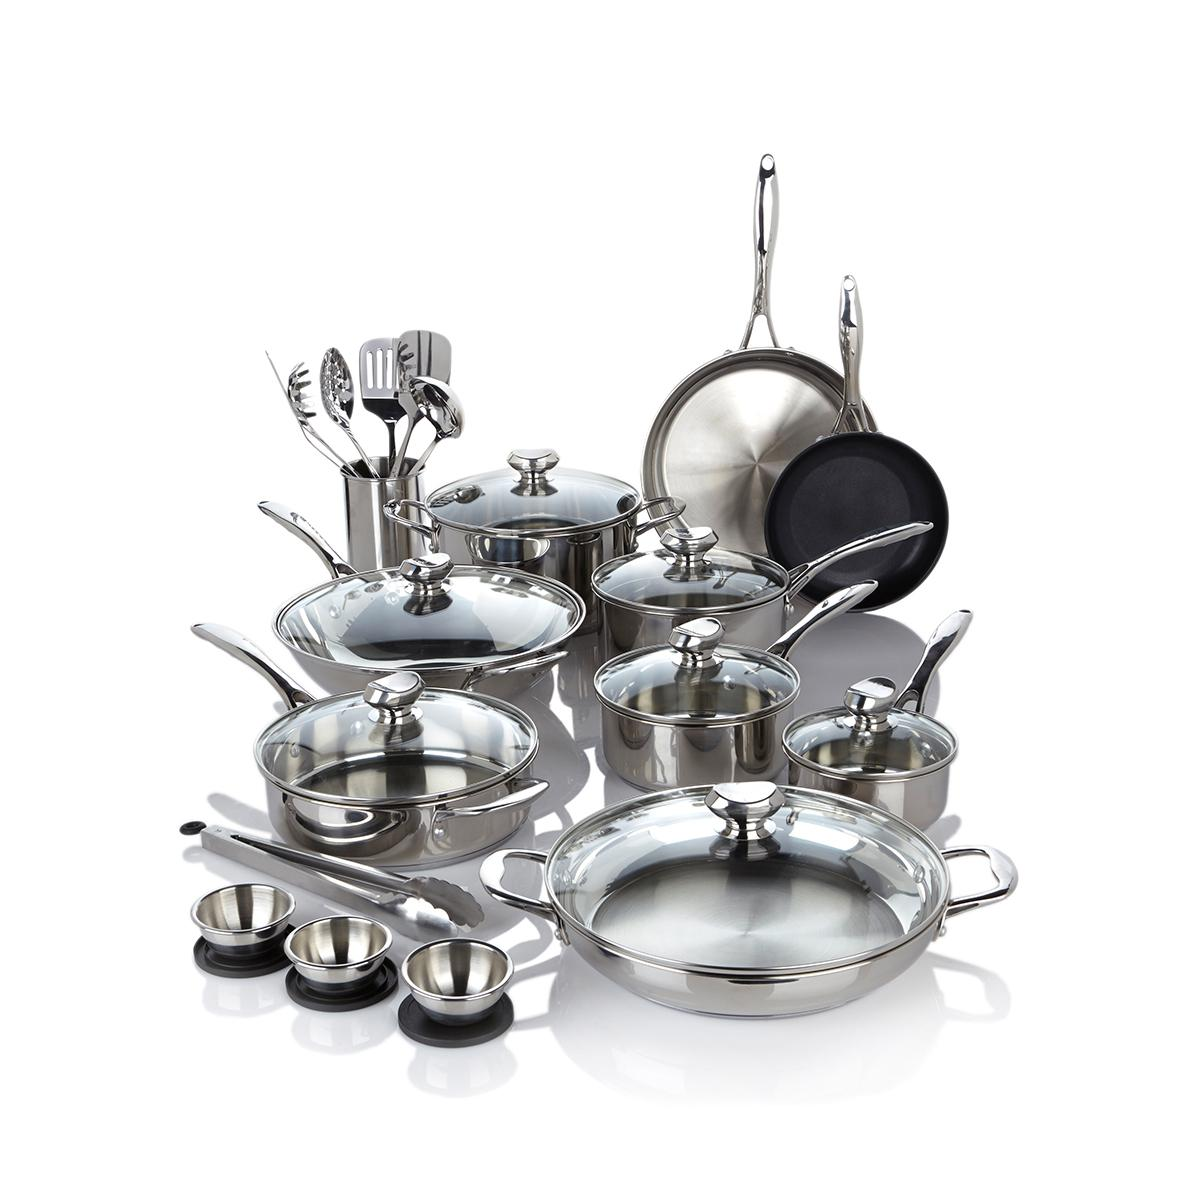 Wolfgang Puck Bistro Elite 27-piece Stainless Steel Cookw...